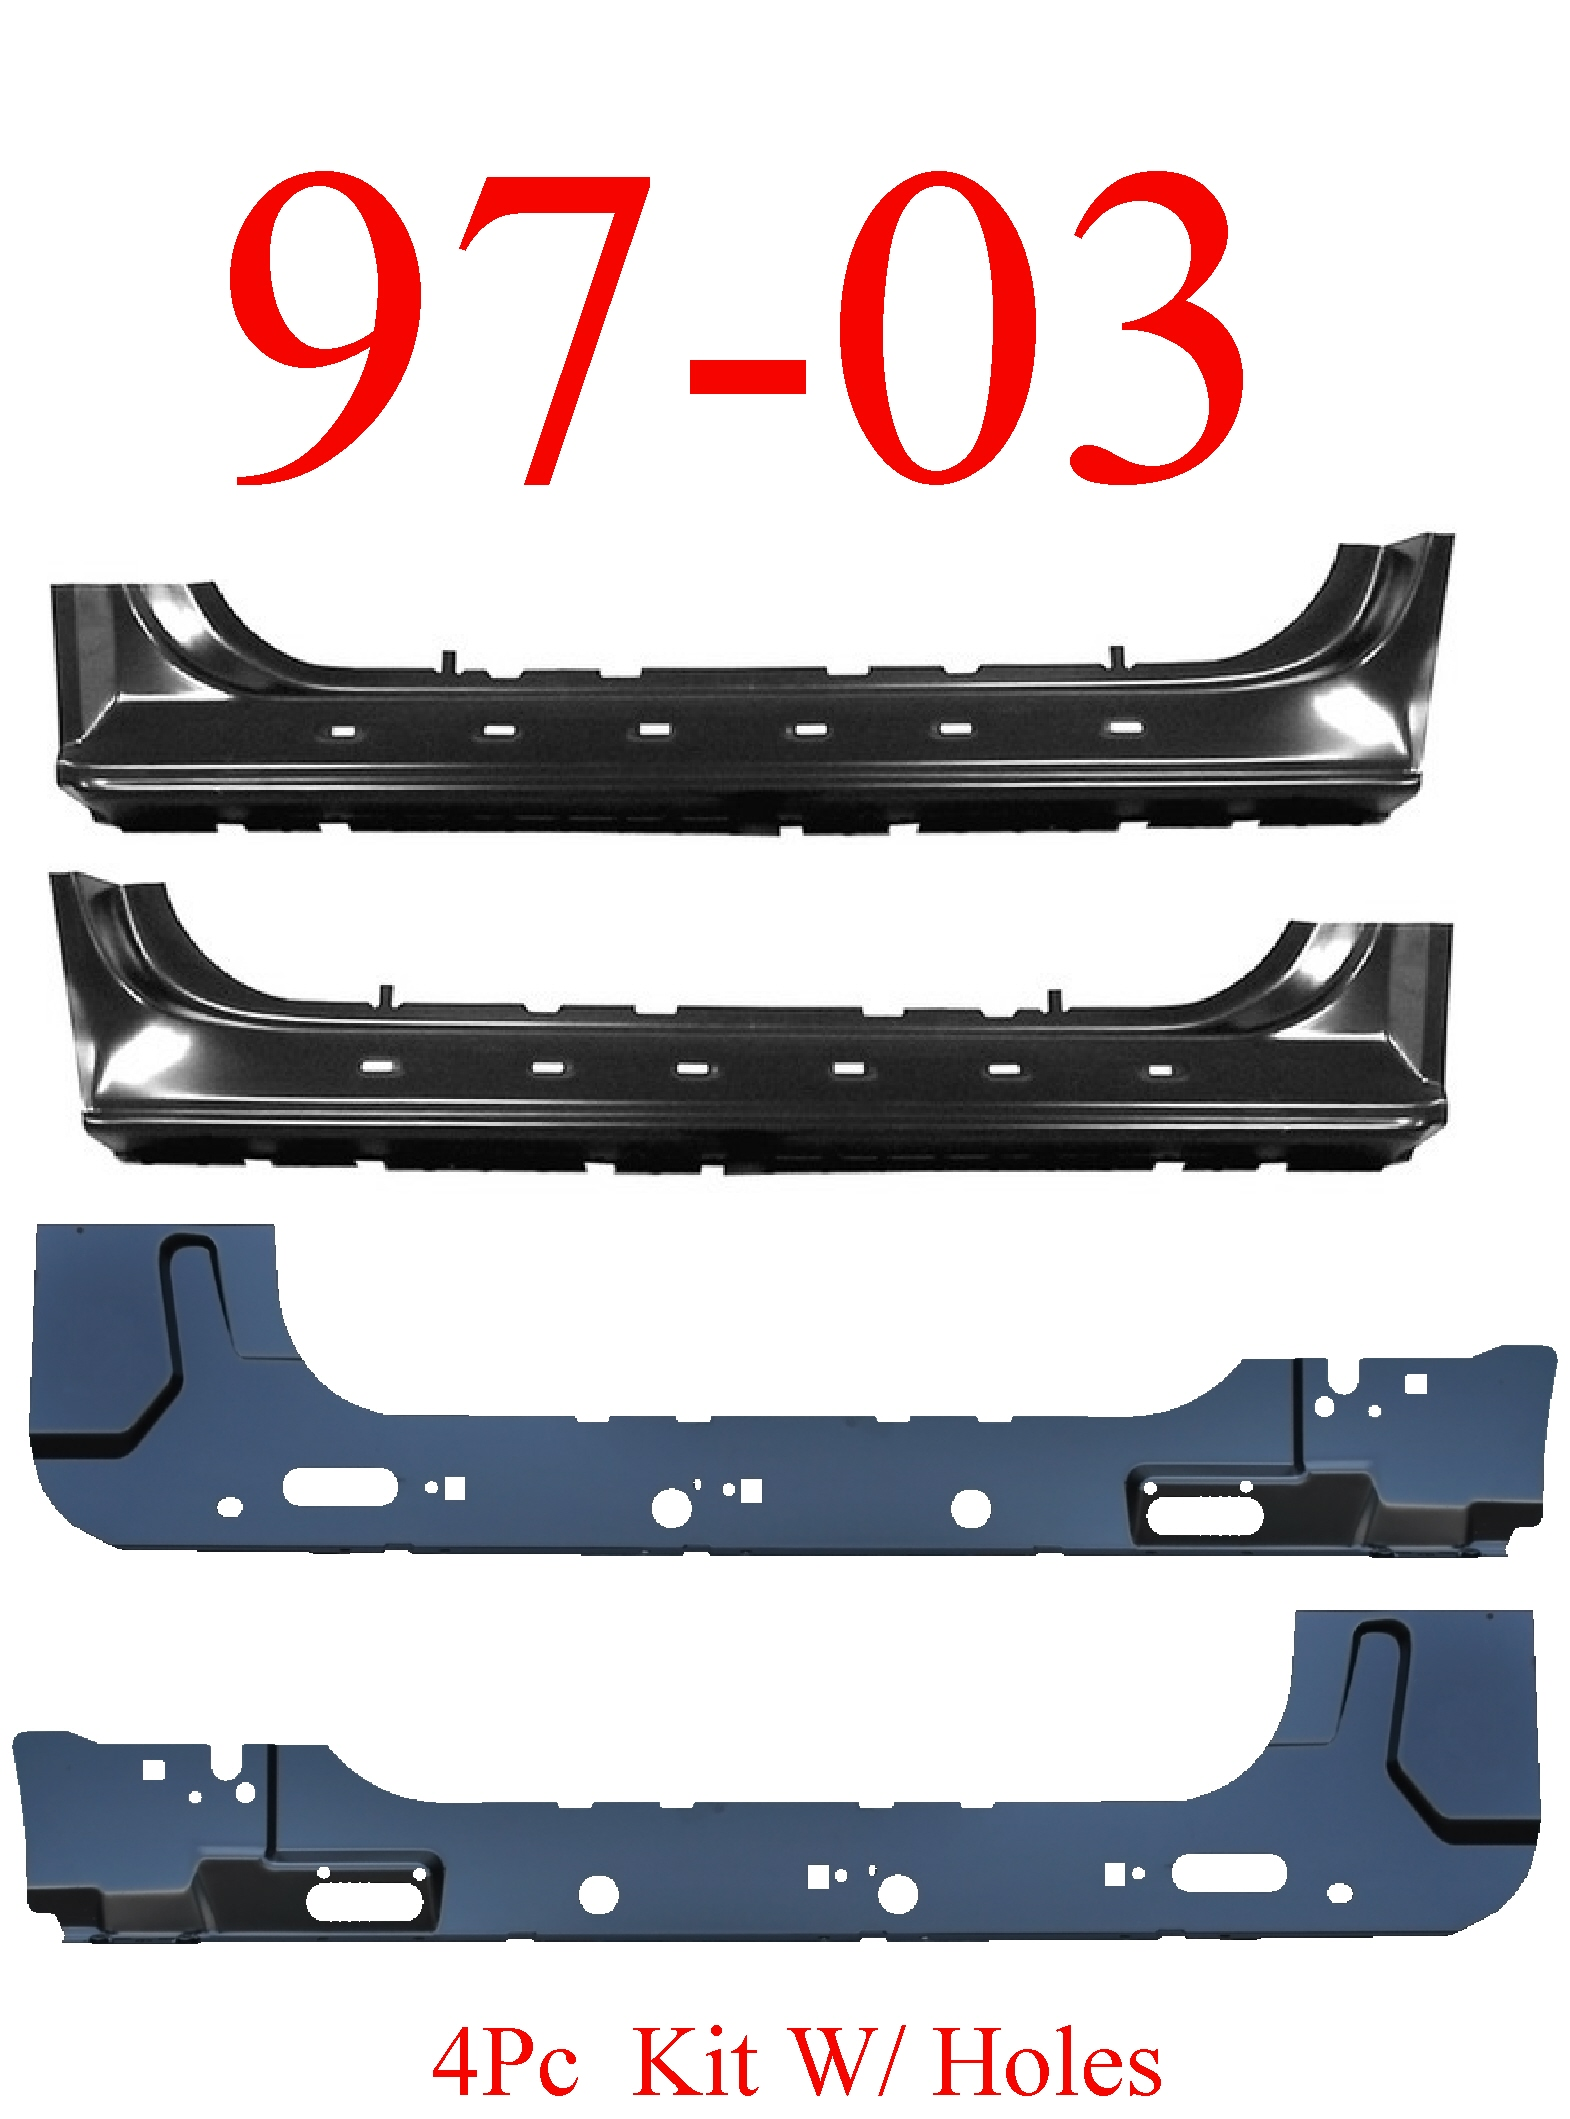 97-03 F150 4Pc Extended Rocker & Inner Rocker Kit W/ Holes